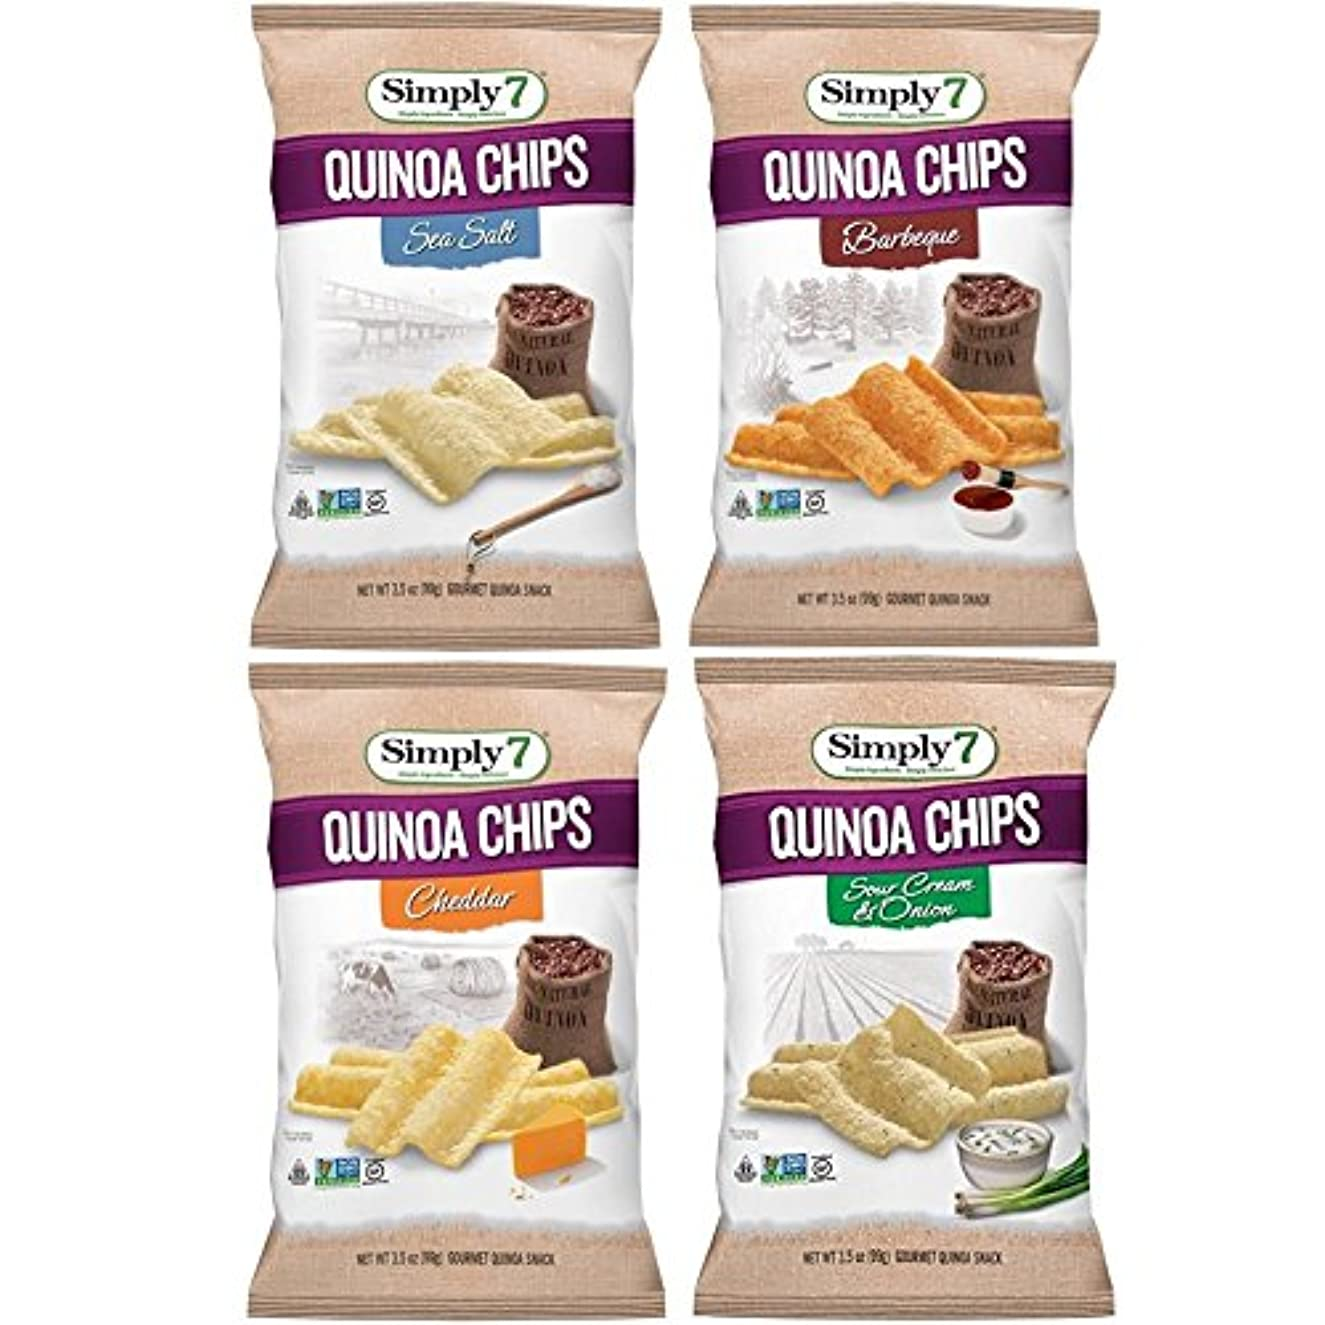 Simply7 Gluten Free Quinoa Chips, Variety Pack, 4 Count